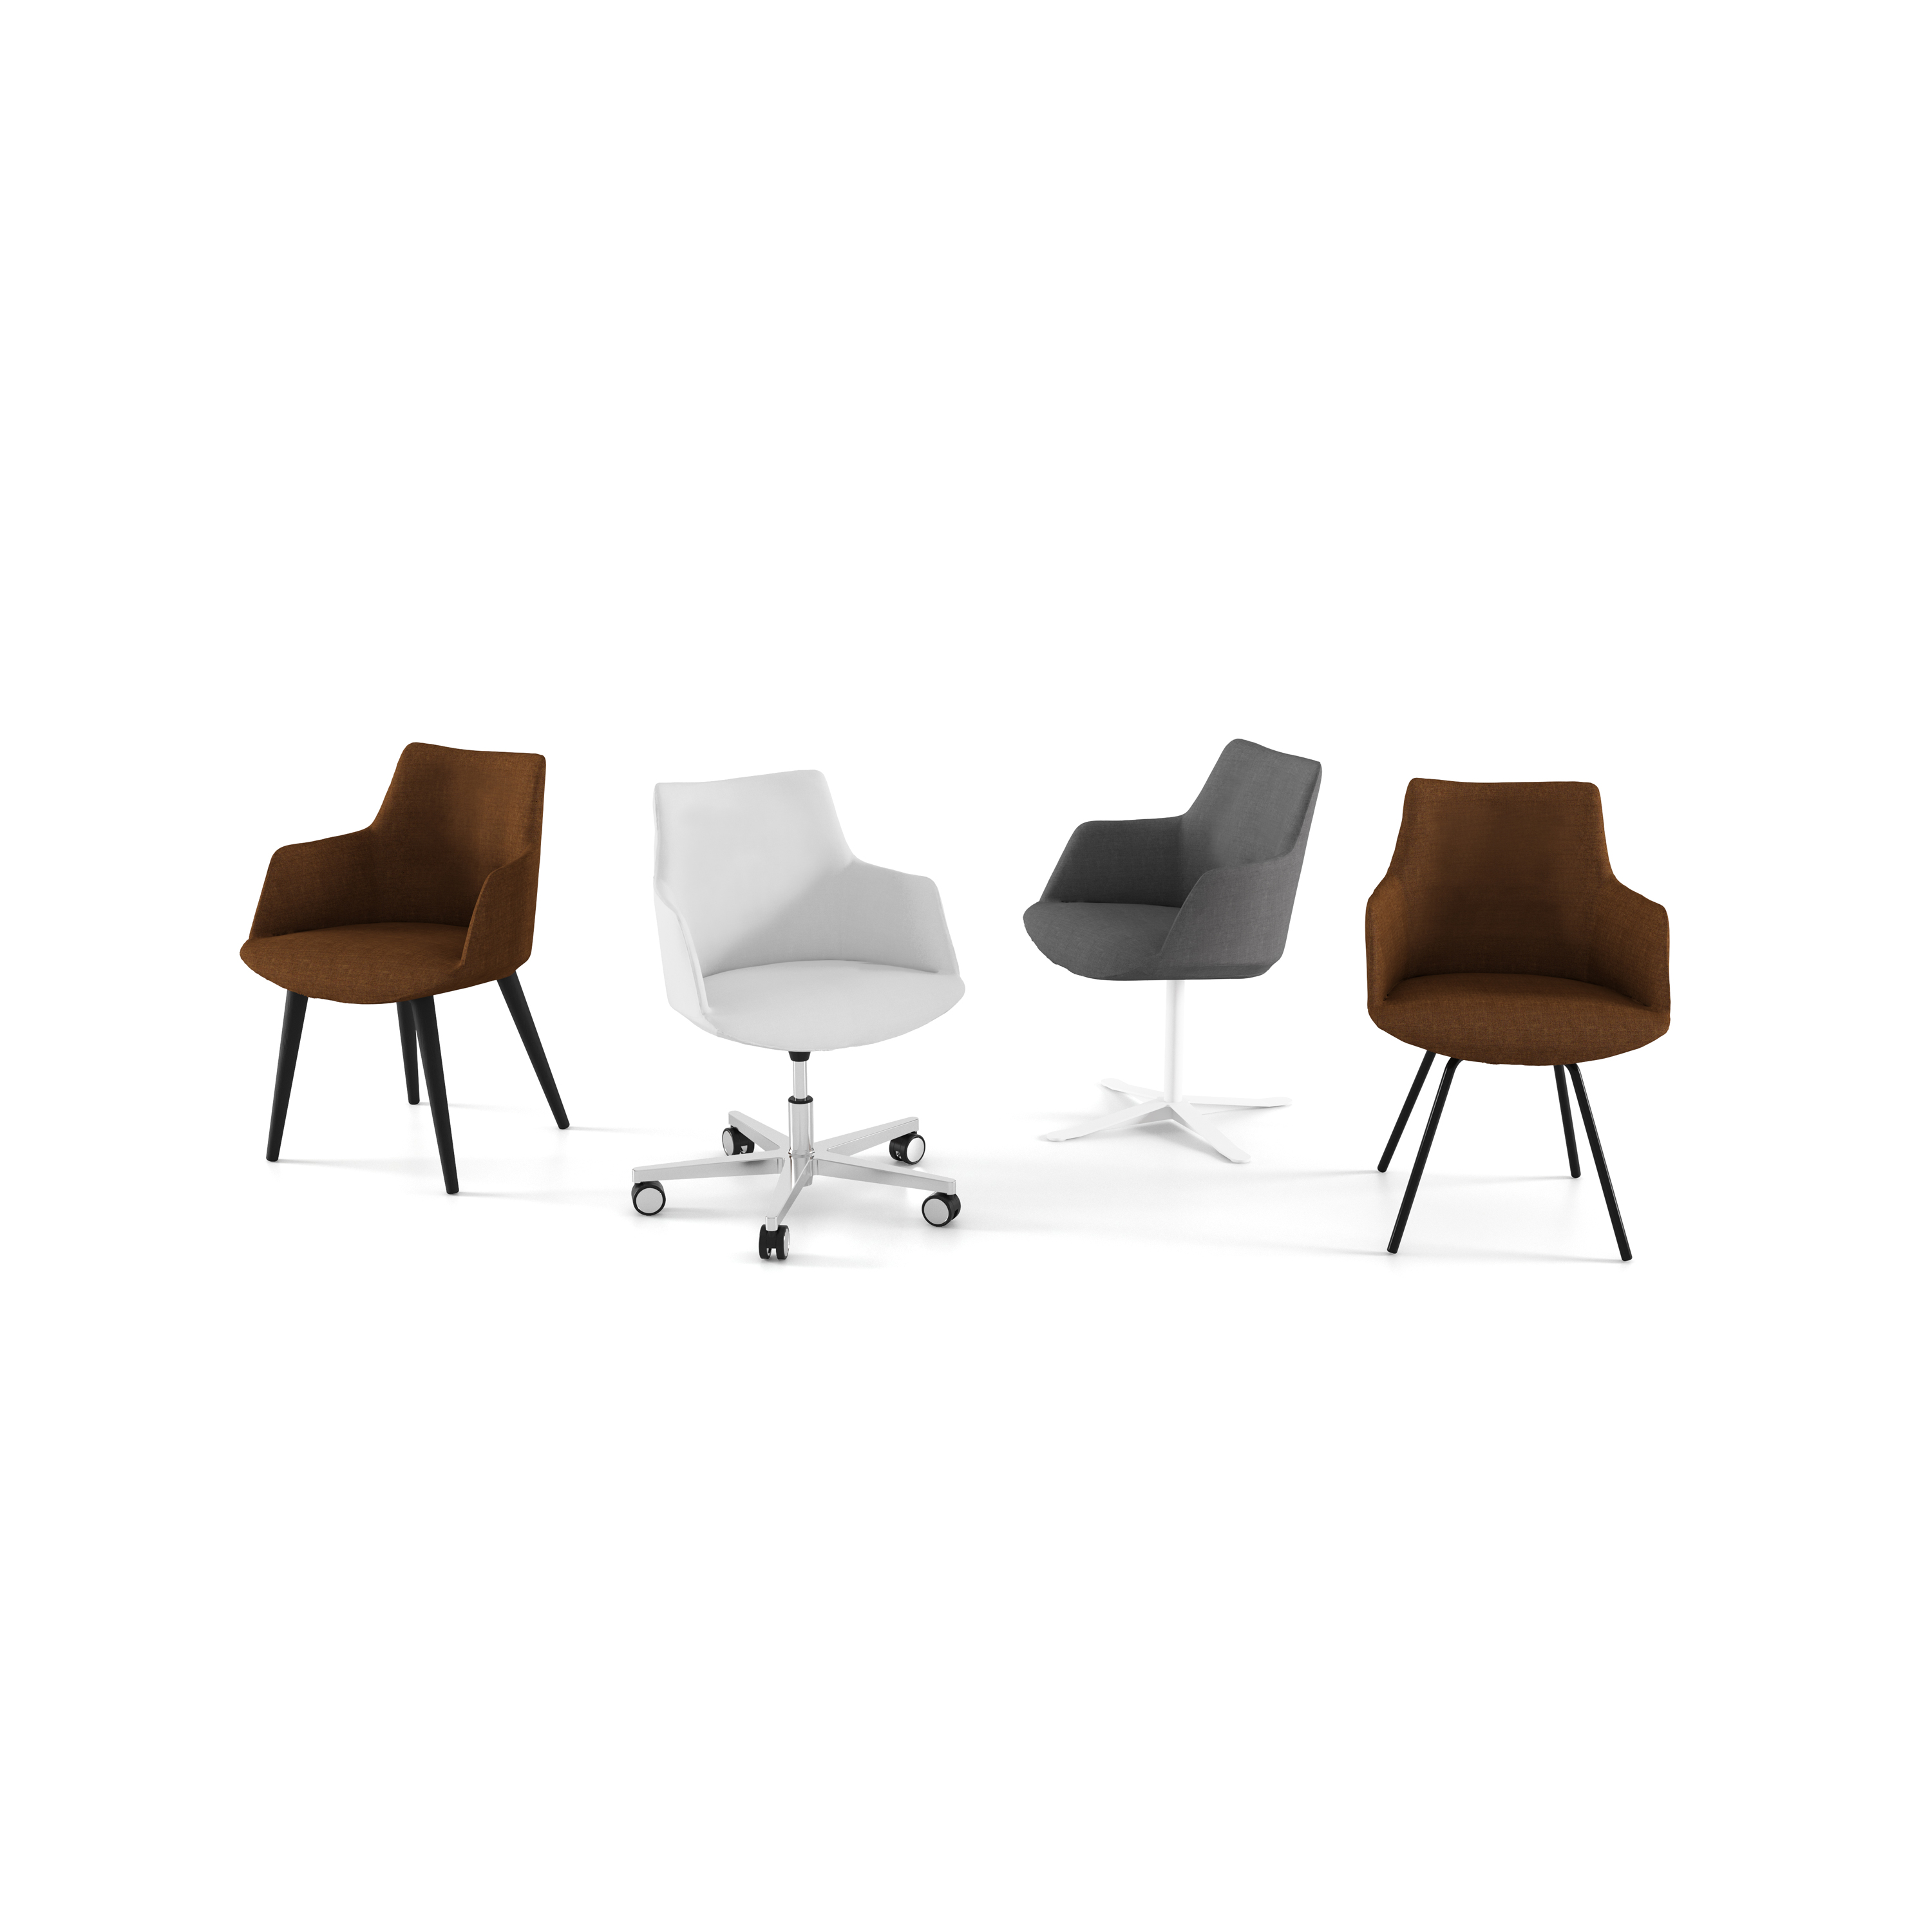 04S_Estel_Comfort&Relax_Chairs&Stool_Divina